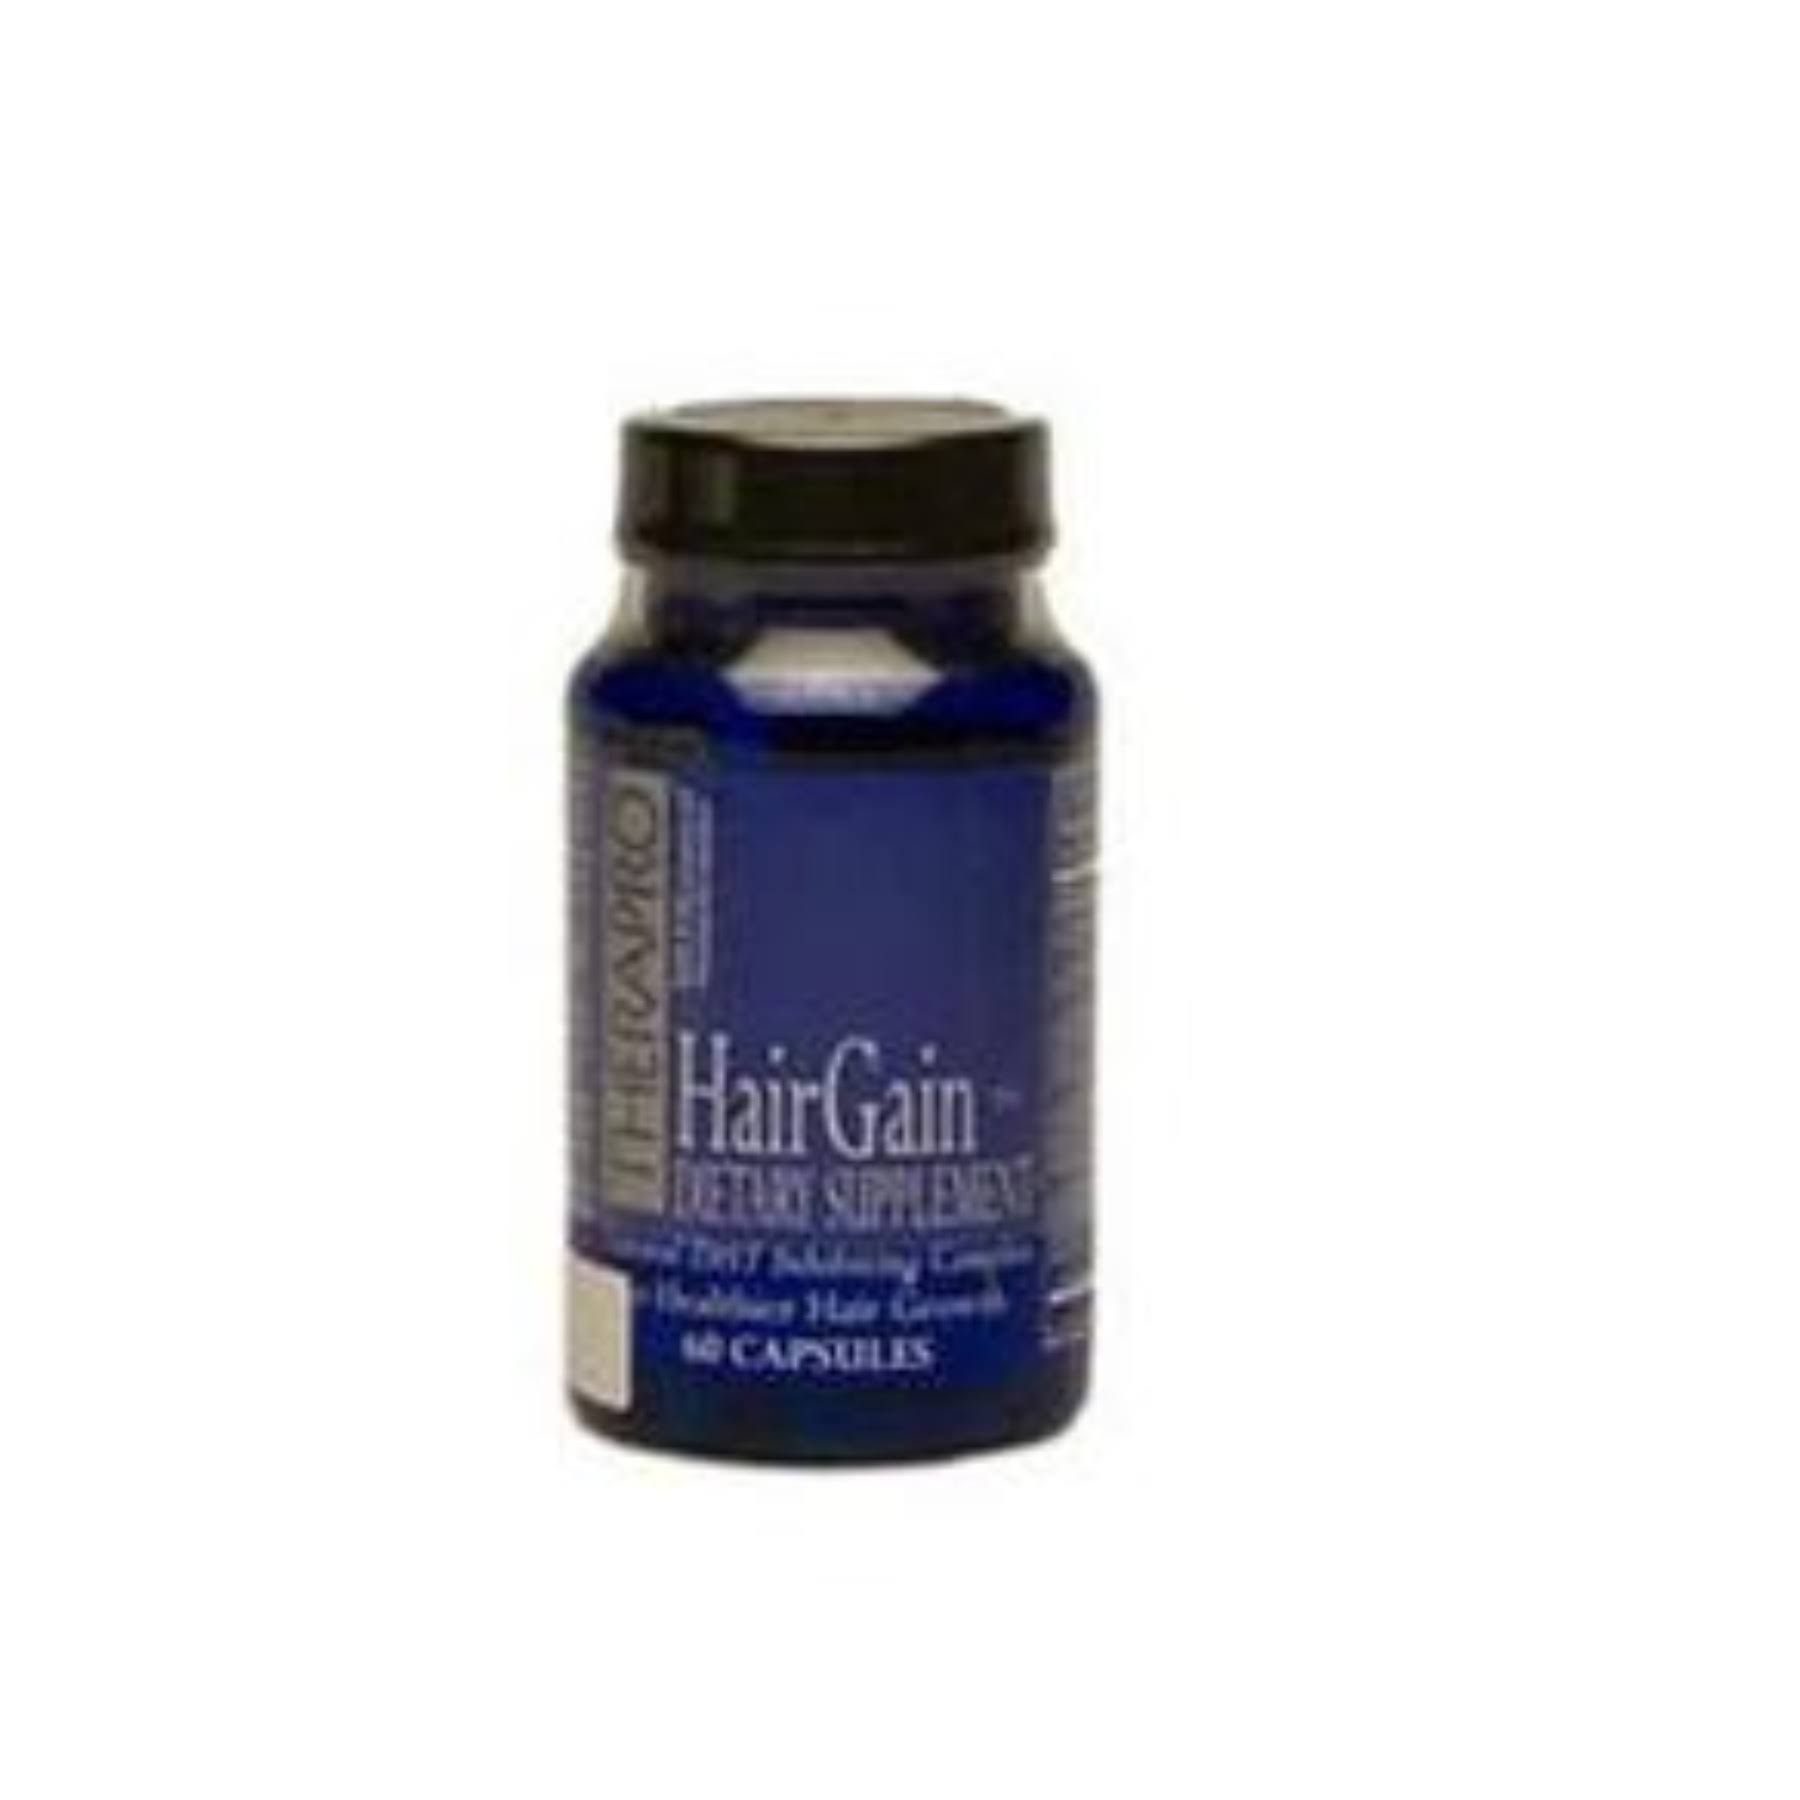 Mediceuticals Hair Gain Supplement - 30 Day Supply